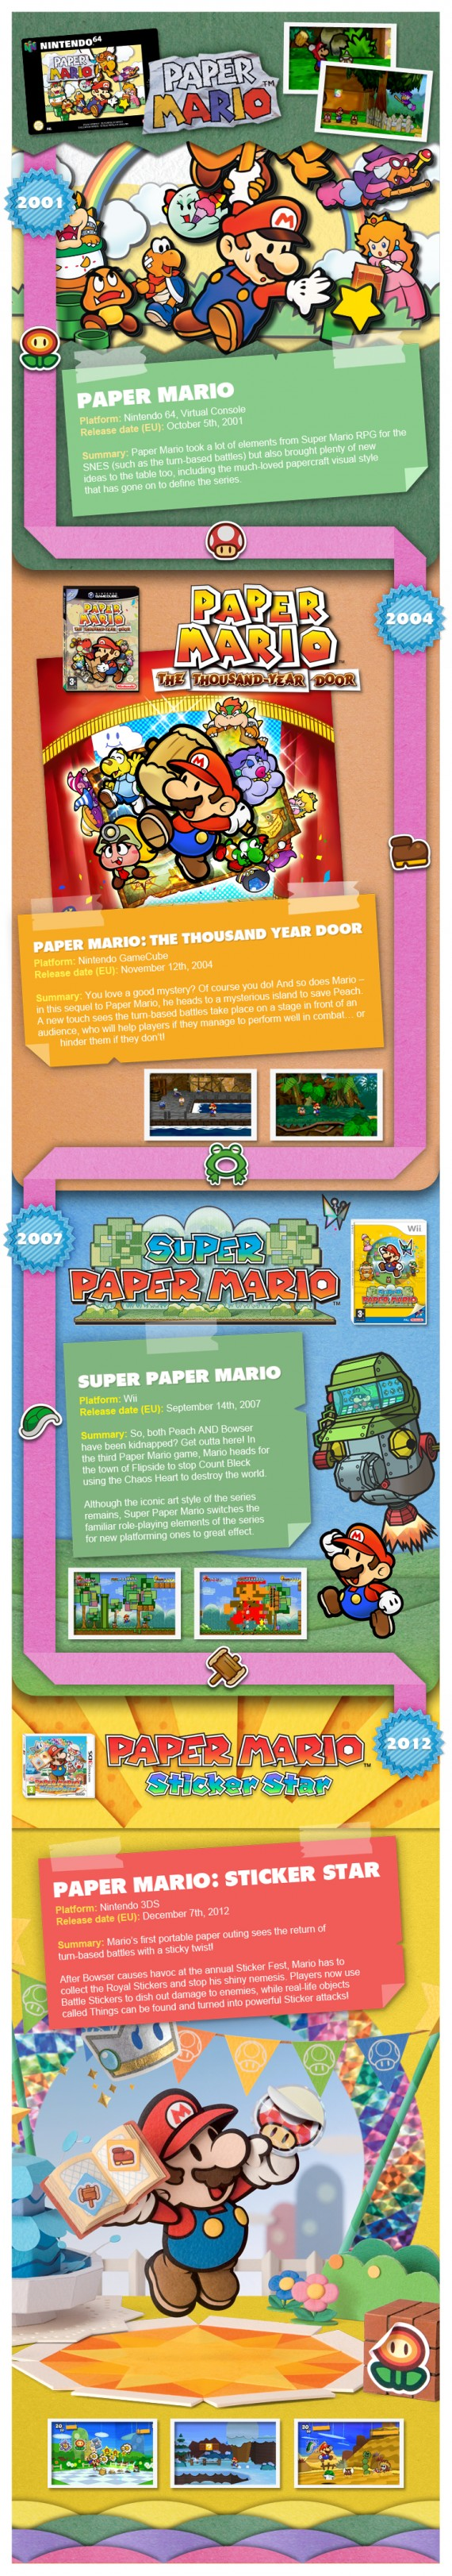 Infographic for Paper Mario